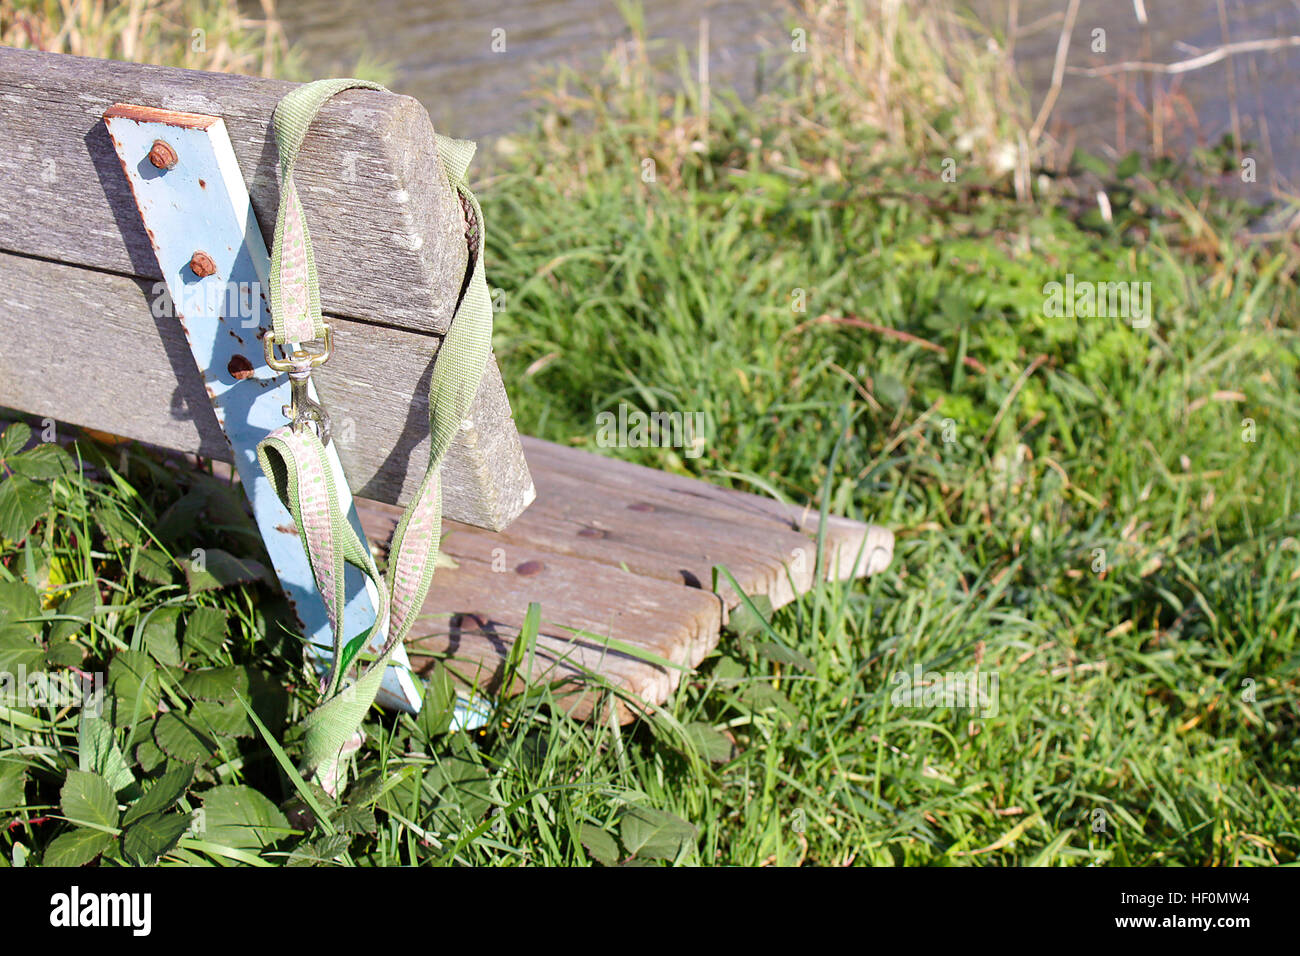 Dog collar left behind on bench with grasses growing wildly beneath it. - Stock Image